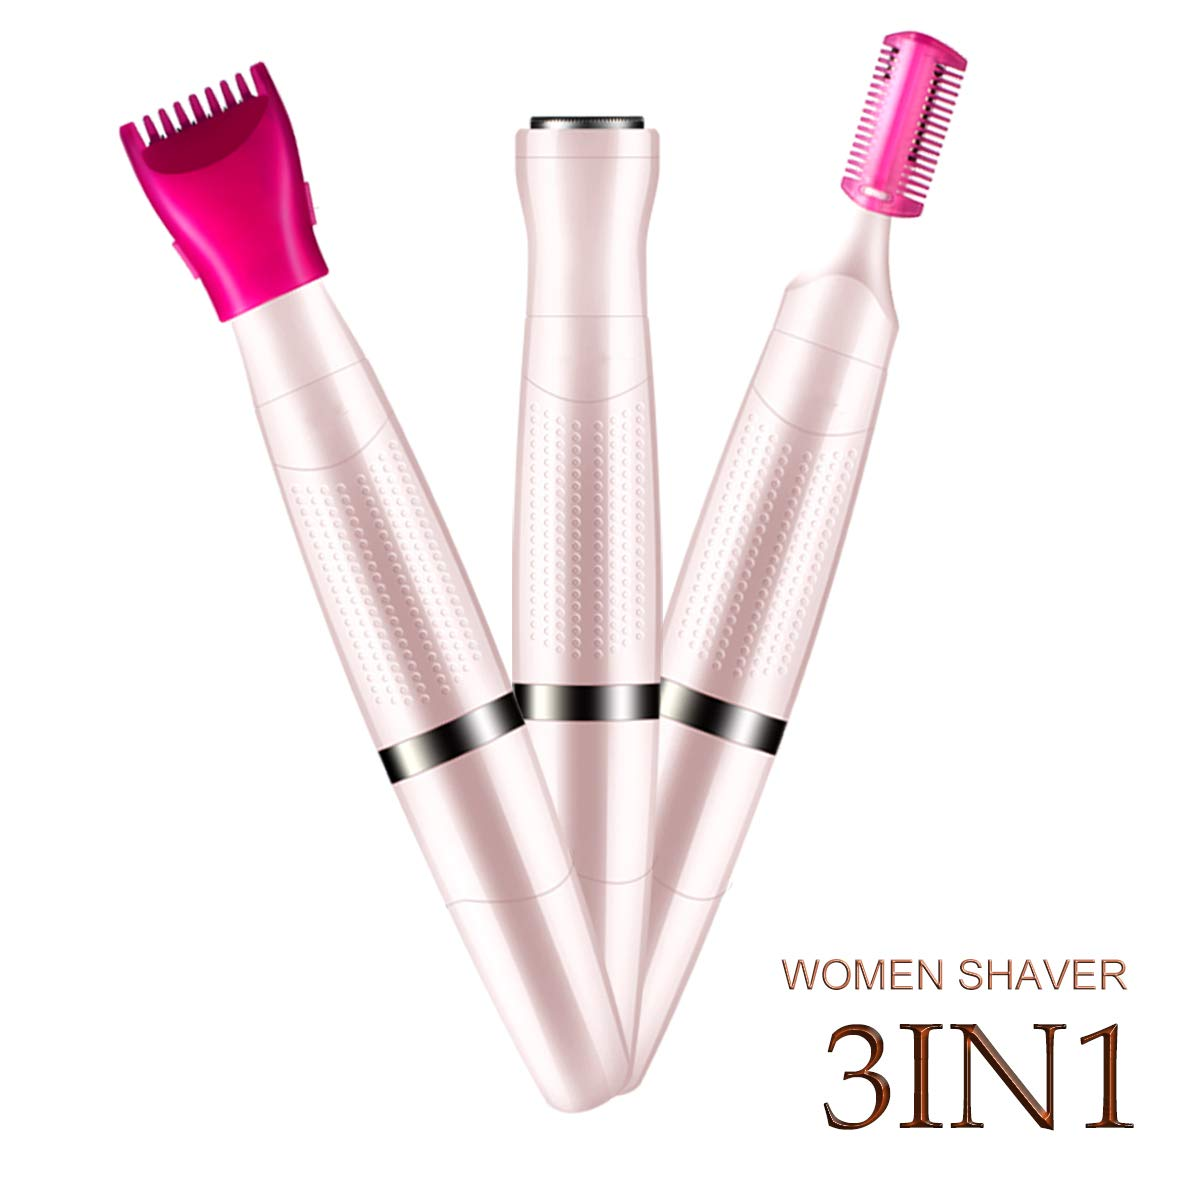 Bikini Trimmers For Women Ladies Shaver Electric Hair Remover 3in1 Facial Hair Removal Trimmer,Battery Operated,Wet and Dry Use